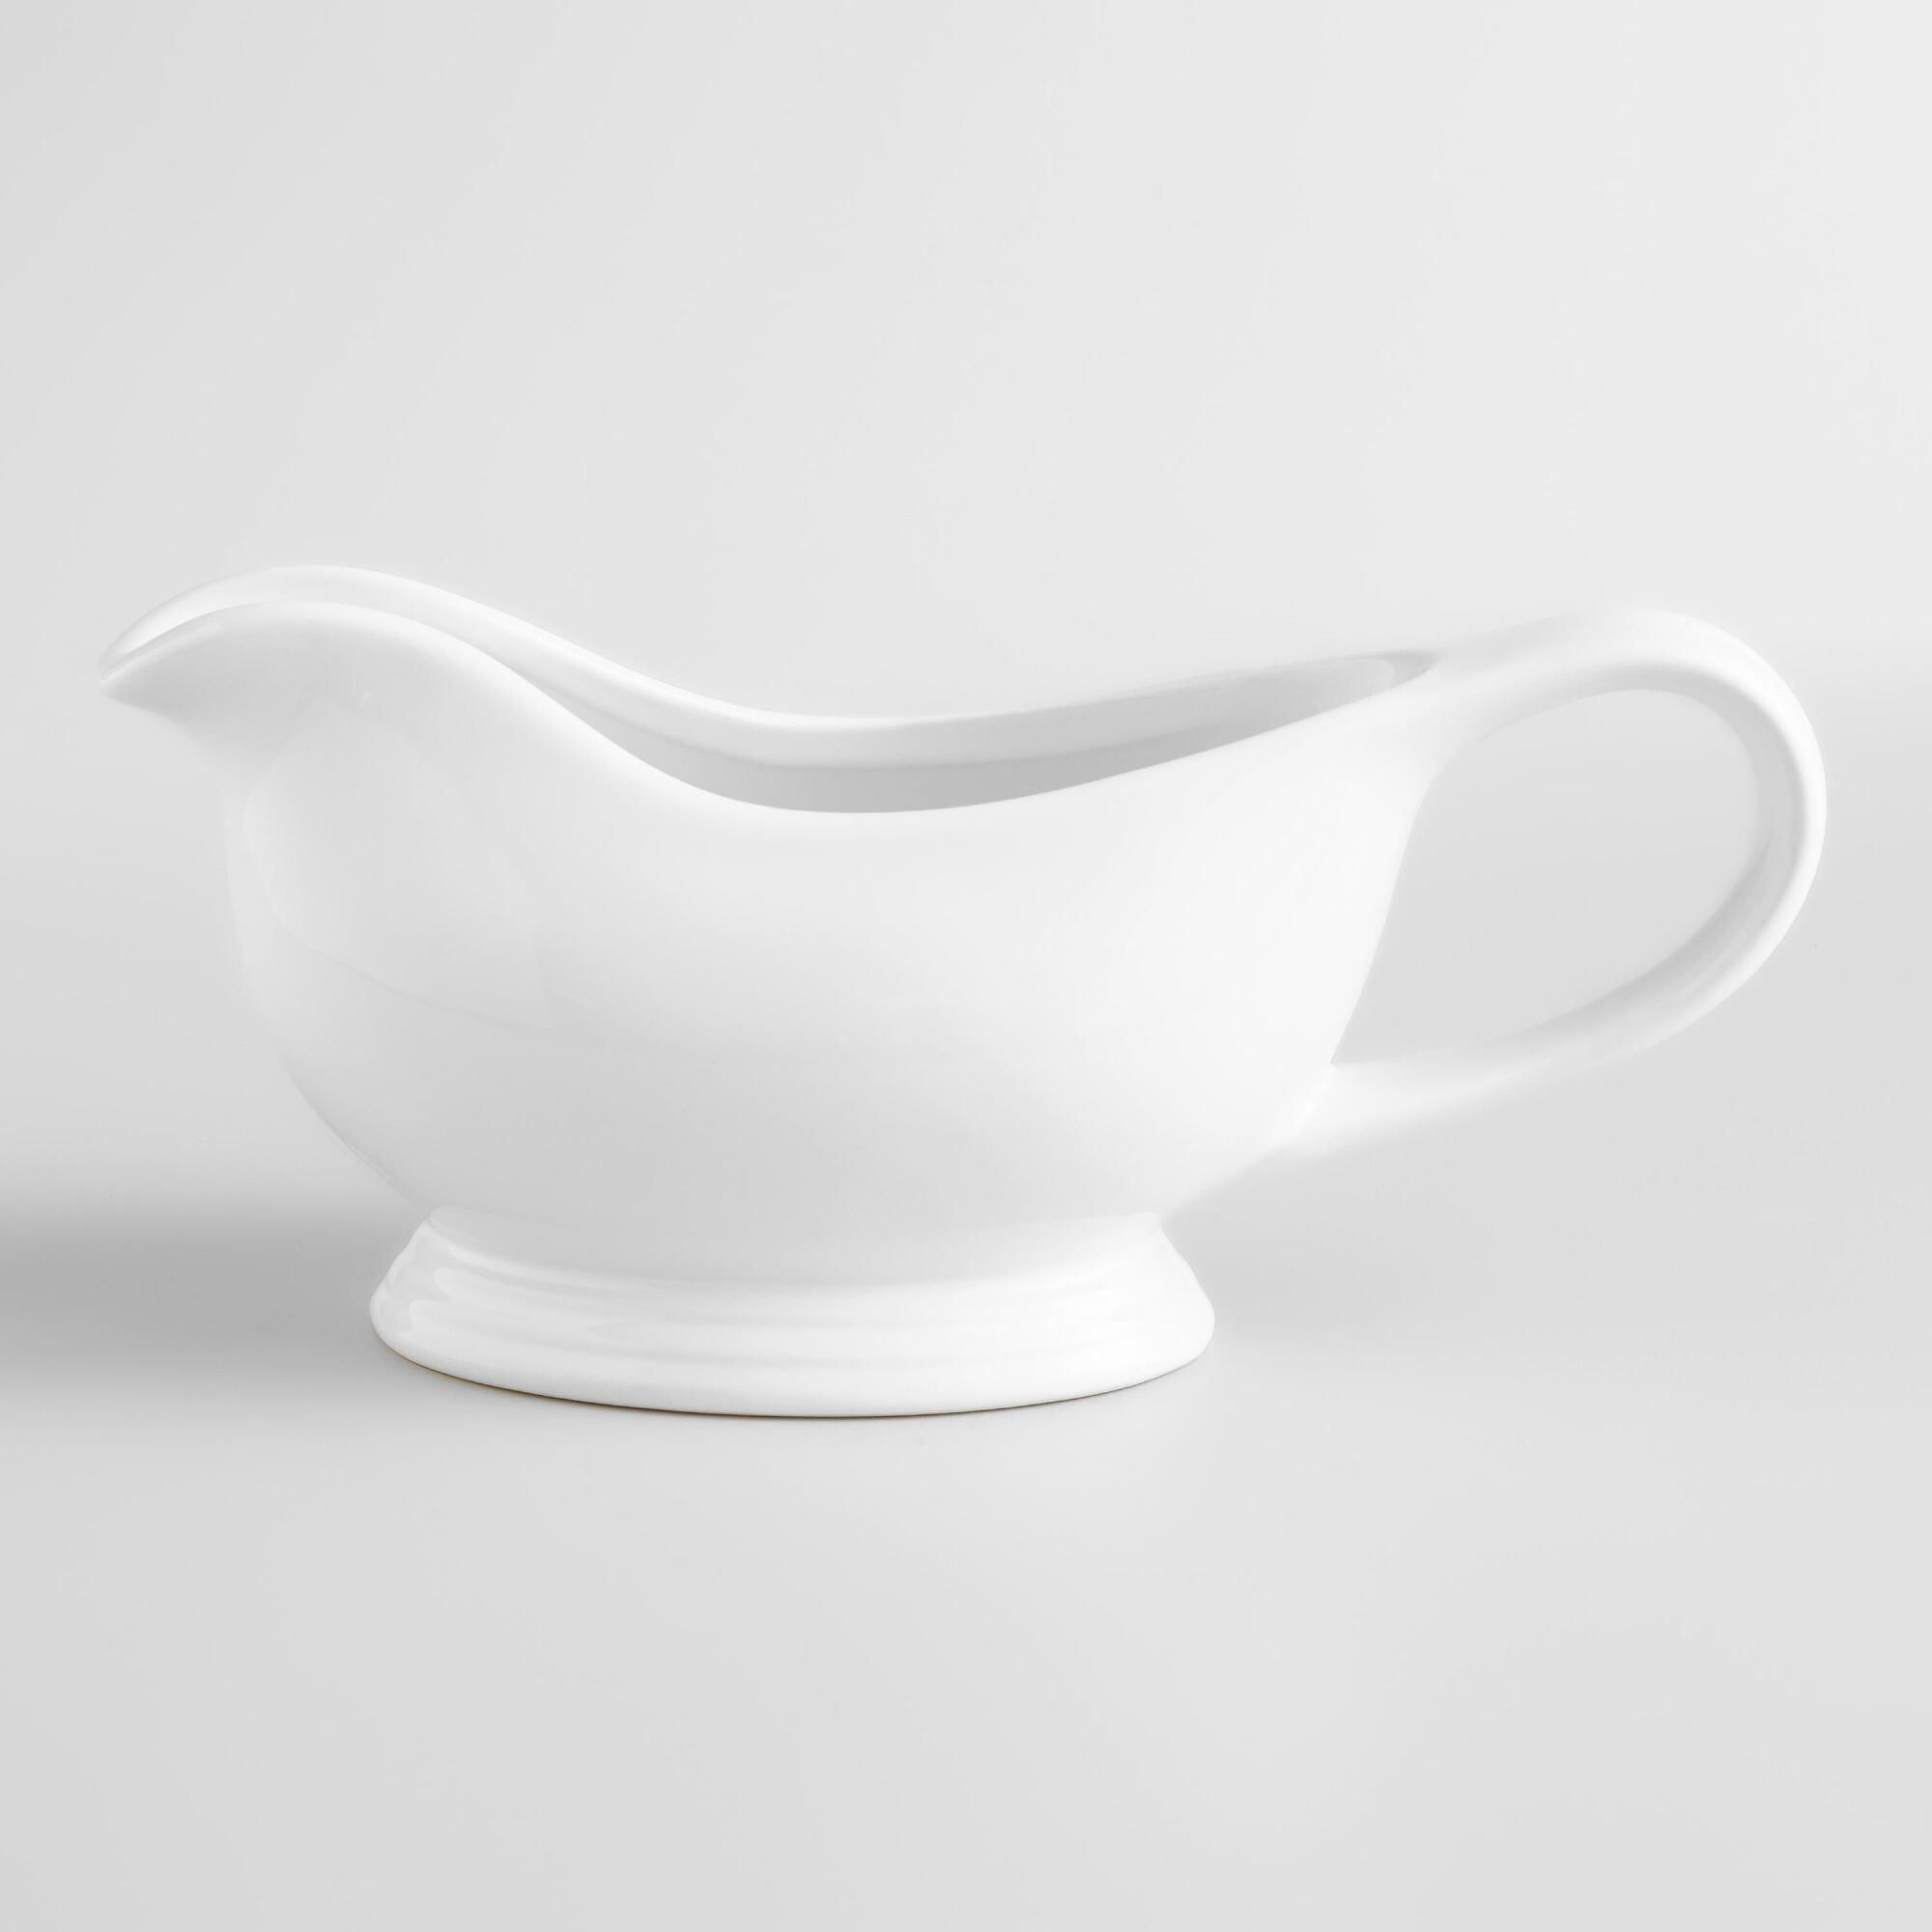 Our perfectly proportioned White Gravy Boat is a staple ...